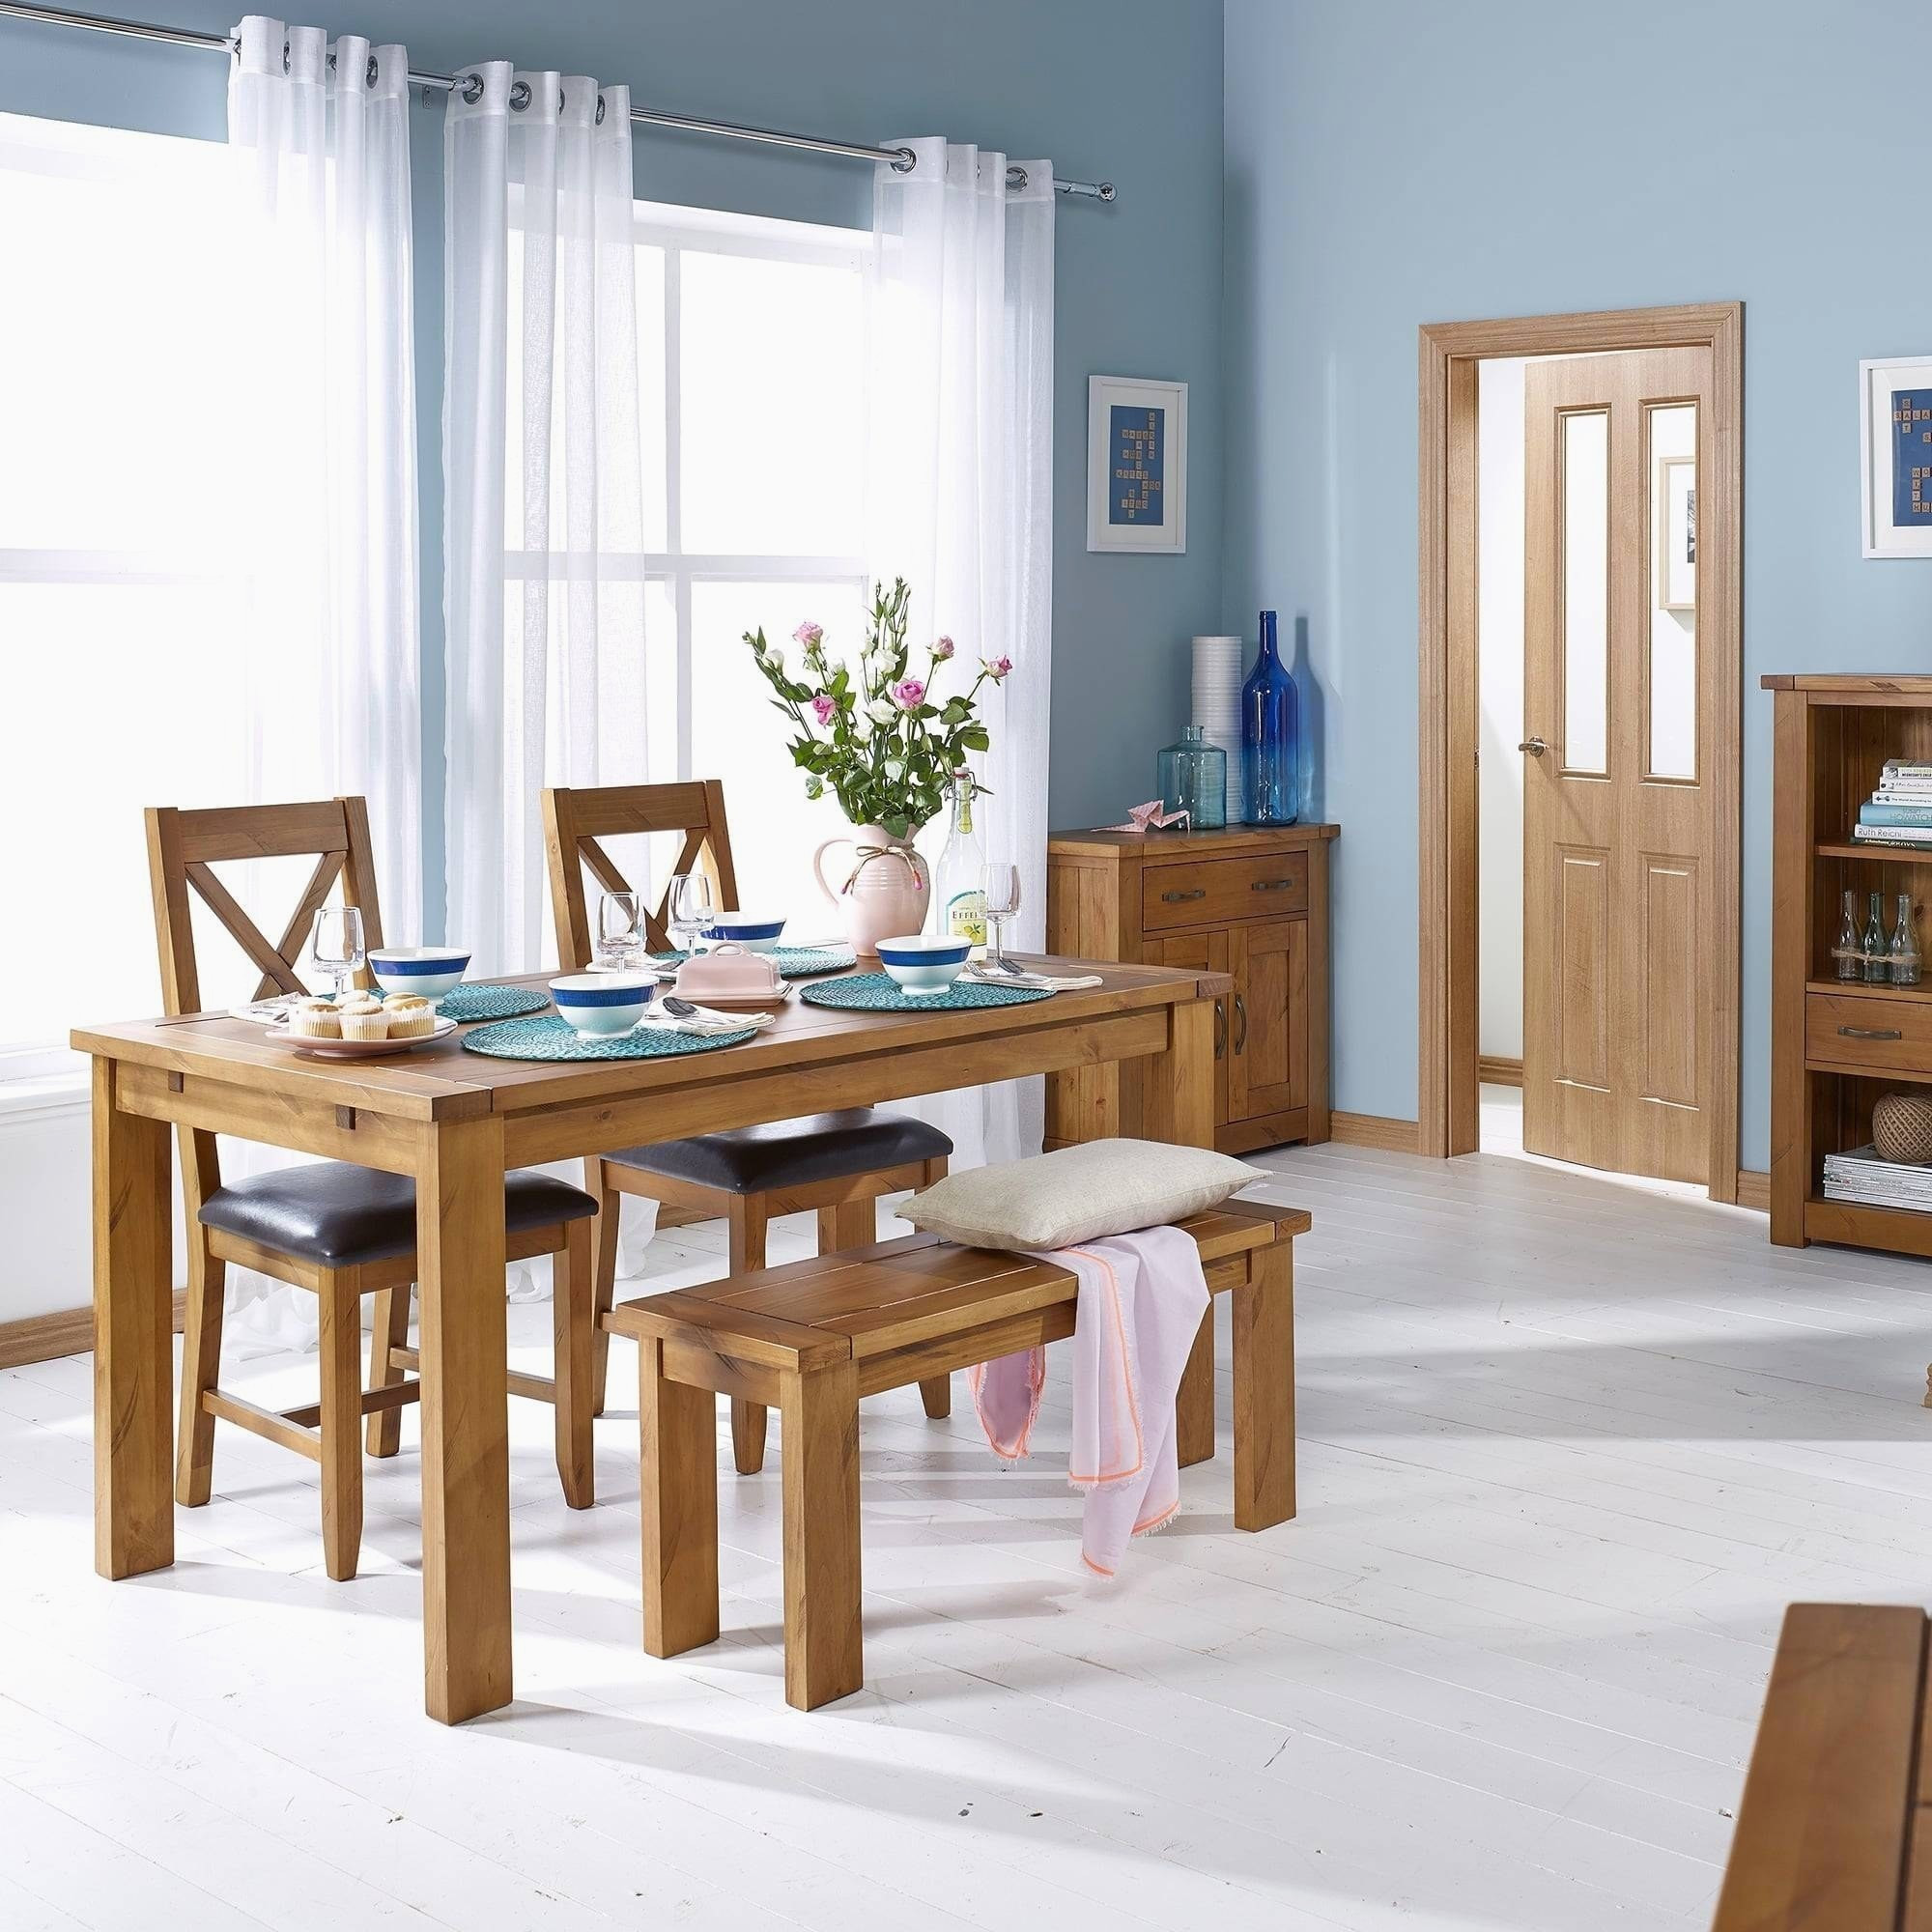 ikea hardwood flooring usa of best of dining room chairs ikea home design minimalist throughout full size of chair adorable ashley furniture chairs beautiful antique english pinedsofa table 0d furniture size